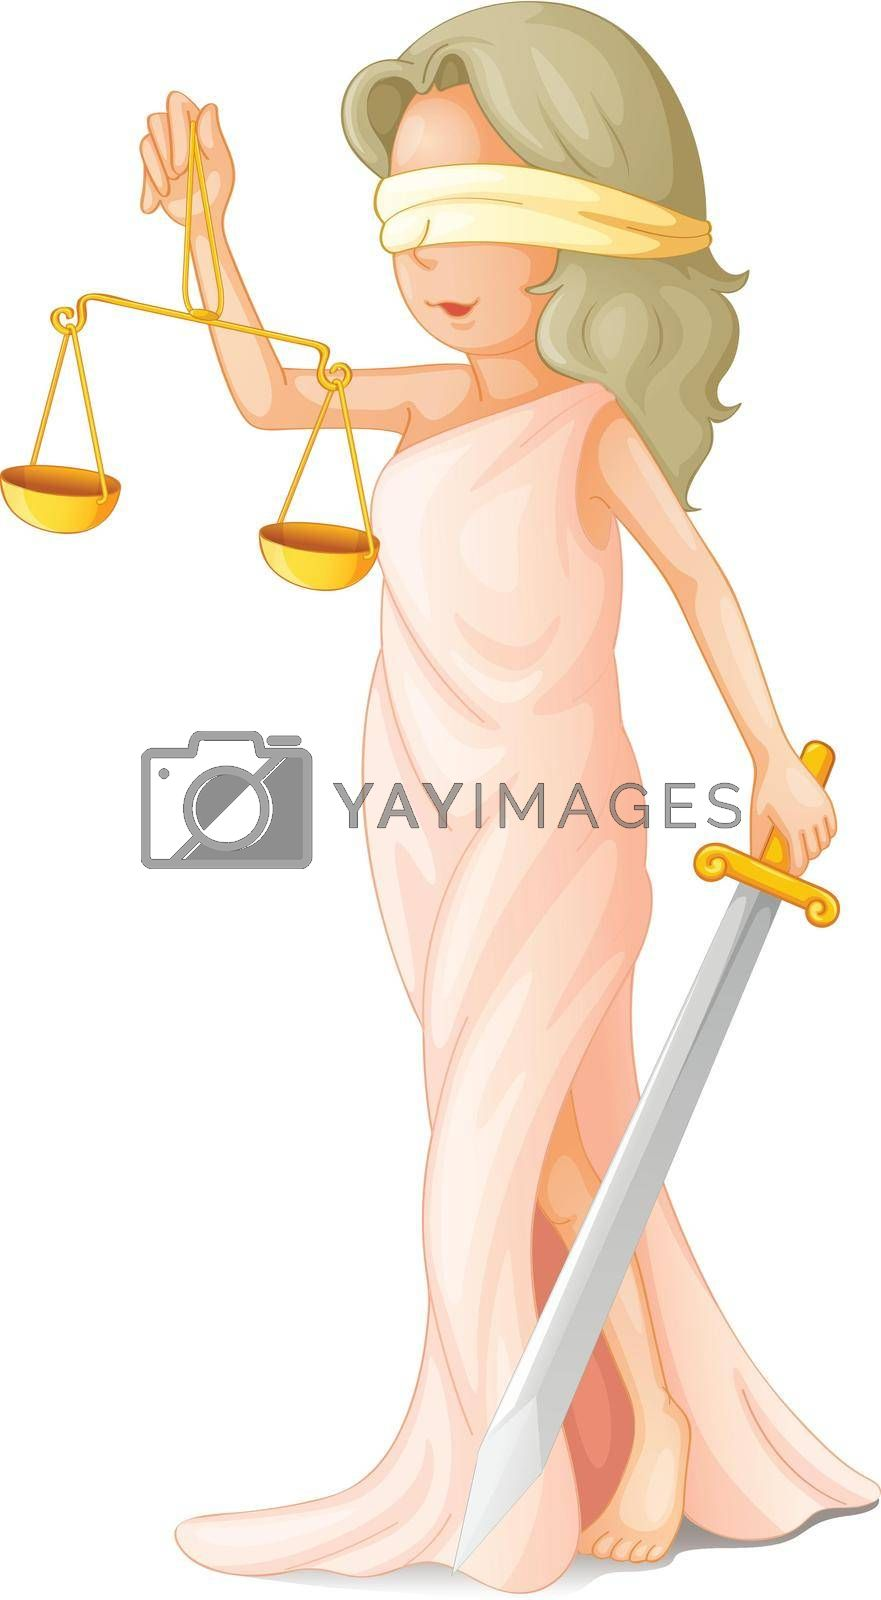 Royalty free image of law concept by iimages